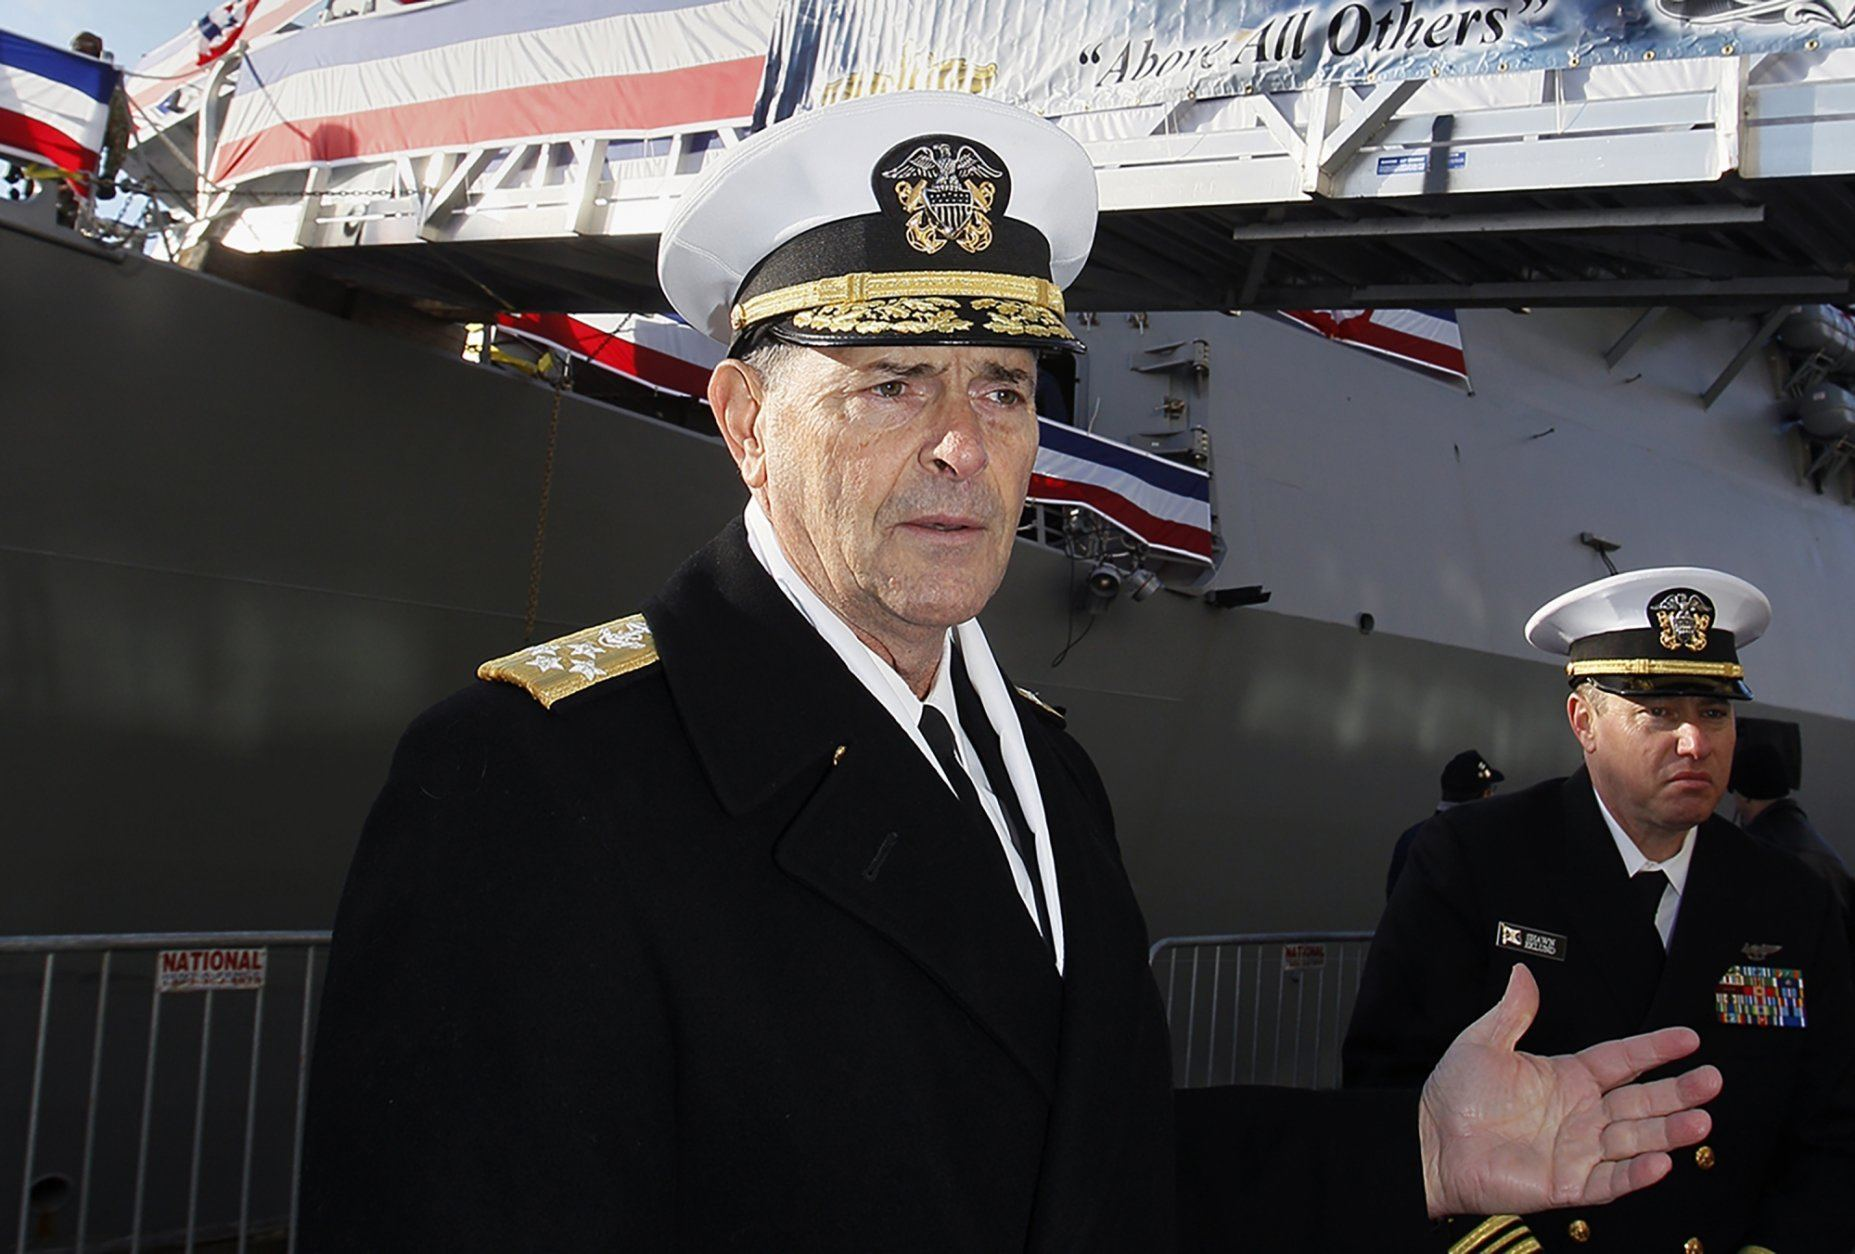 """FILE - In this Dec. 1, 2018 file photo, Vice Chief of Naval Operations, Adm. William Moran describes the function of the USS Thomas Hudner prior to its commissioning ceremony  in Boston.  Moran, the Navy admiral set to become his service's top officer on Aug. 1, 2019, says he will instead retire. The extraordinary downfall of Moran was prompted by what Navy Secretary Richard Spencer on Sunday, July 7 called poor judgment. Spencer faulted Moran for having a professional relationship with a person who had been disciplined for what Spencer called """"failing to meet the values and standards of the naval profession."""" (Paul Connors/The Boston Herald via AP, File)"""